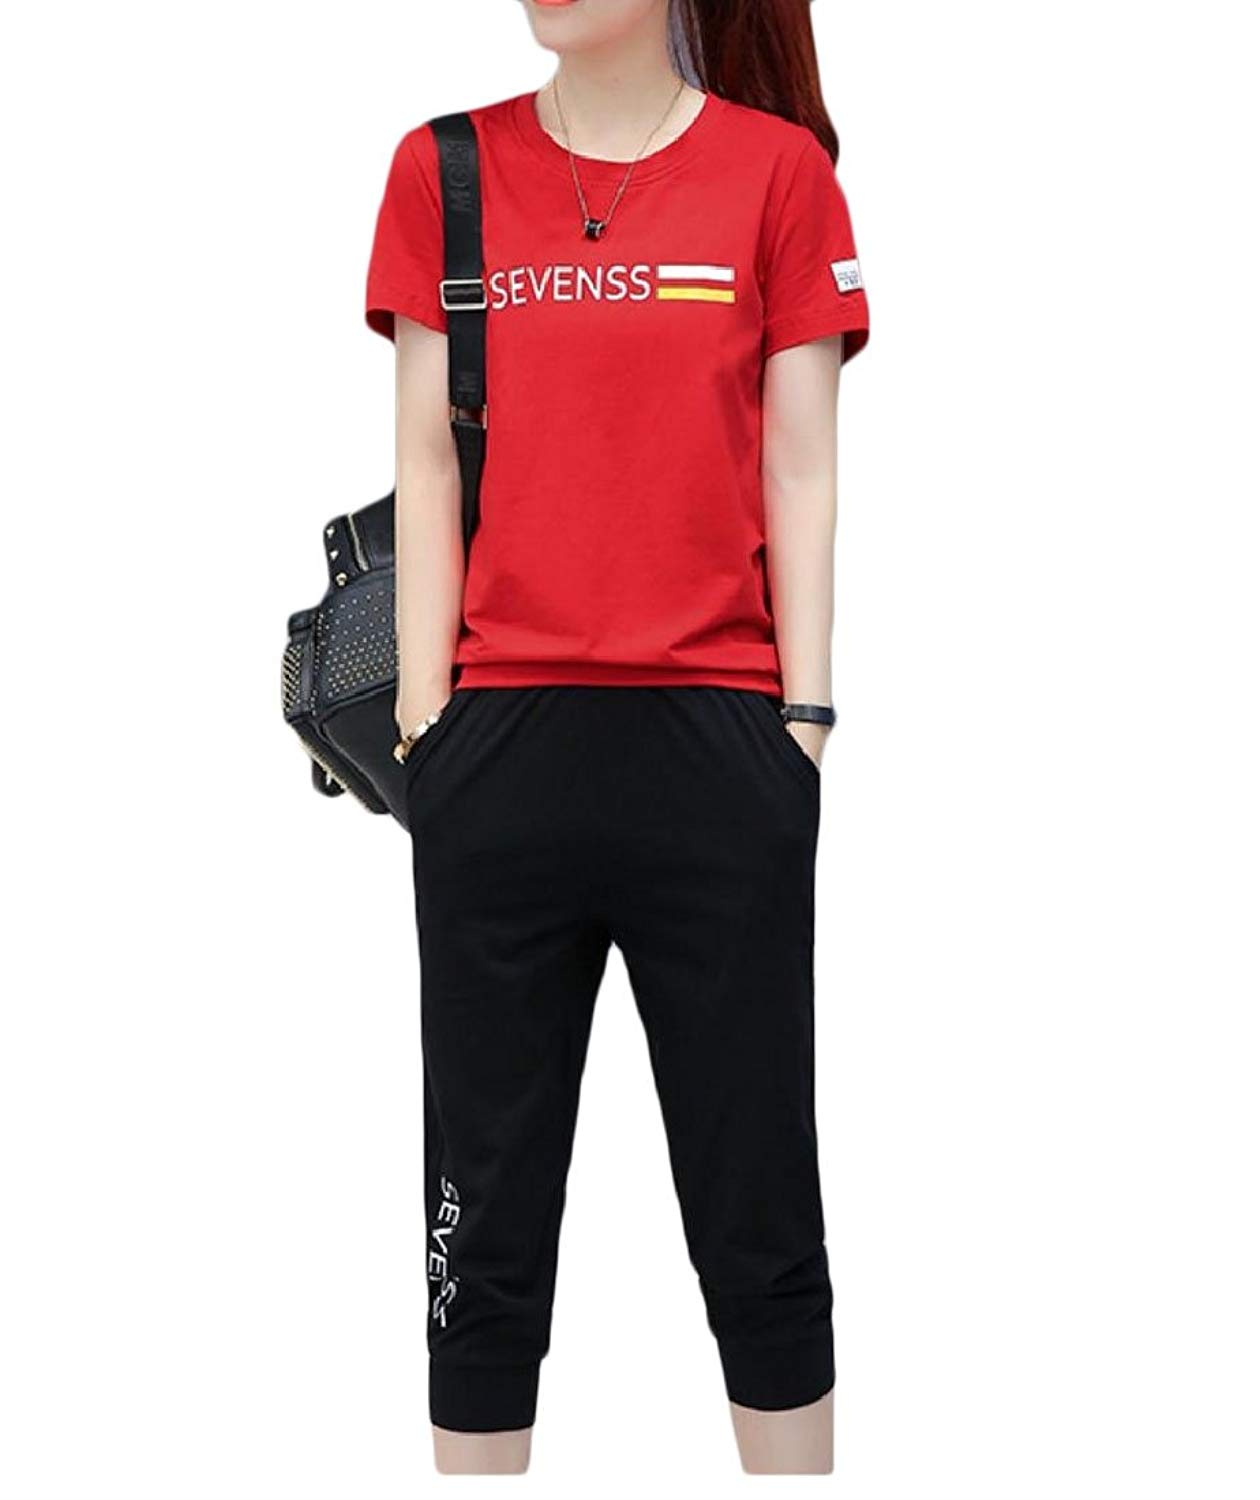 7860c8f31f7 Get Quotations · YUNY Women Outfits Capri Pant Fashion Casual Fitness  Comfortable Tracksuit